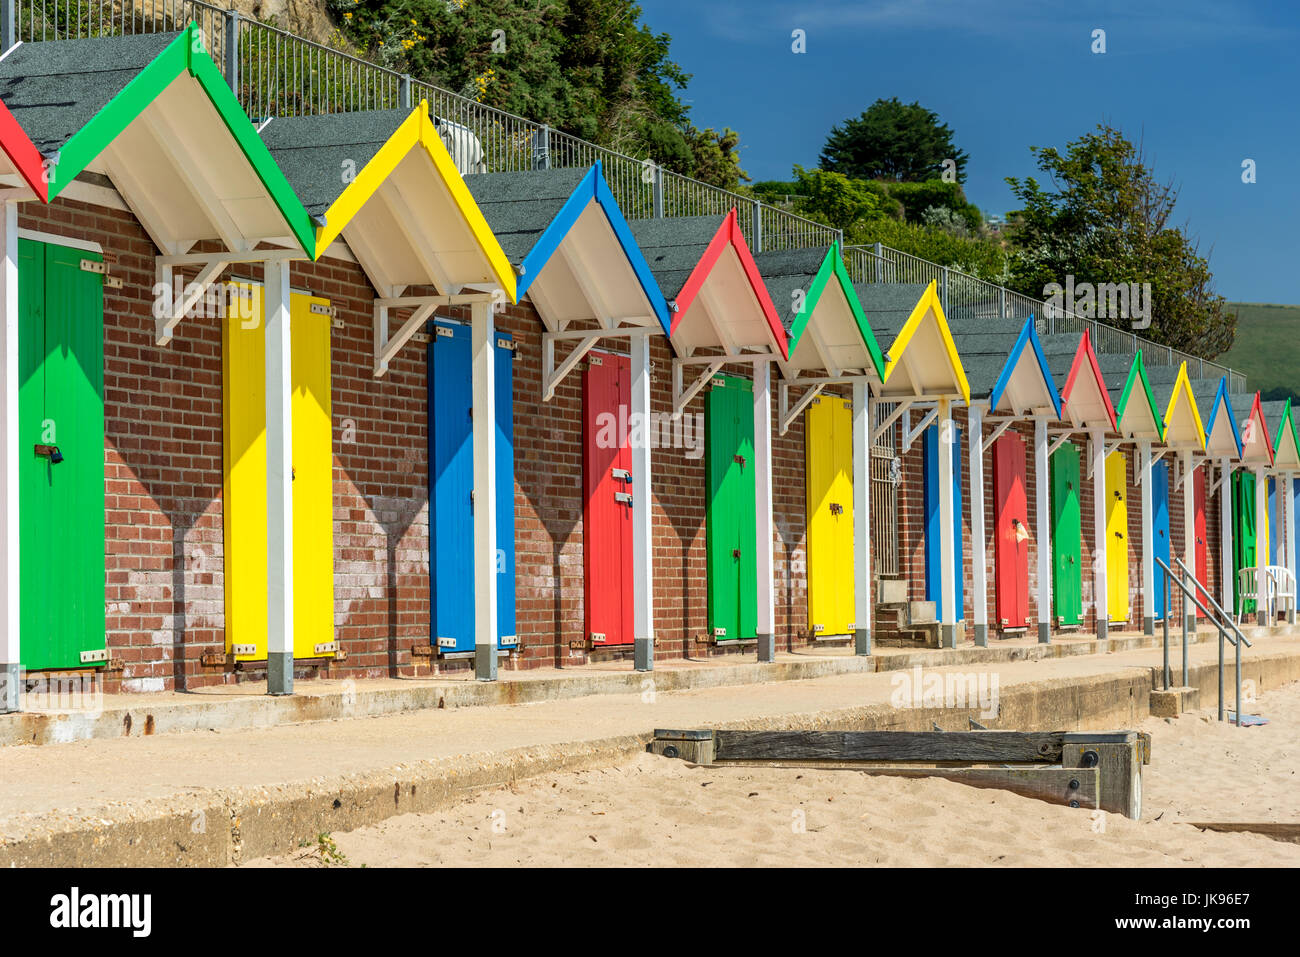 Row of colourful beach huts on a sunny day - Stock Image